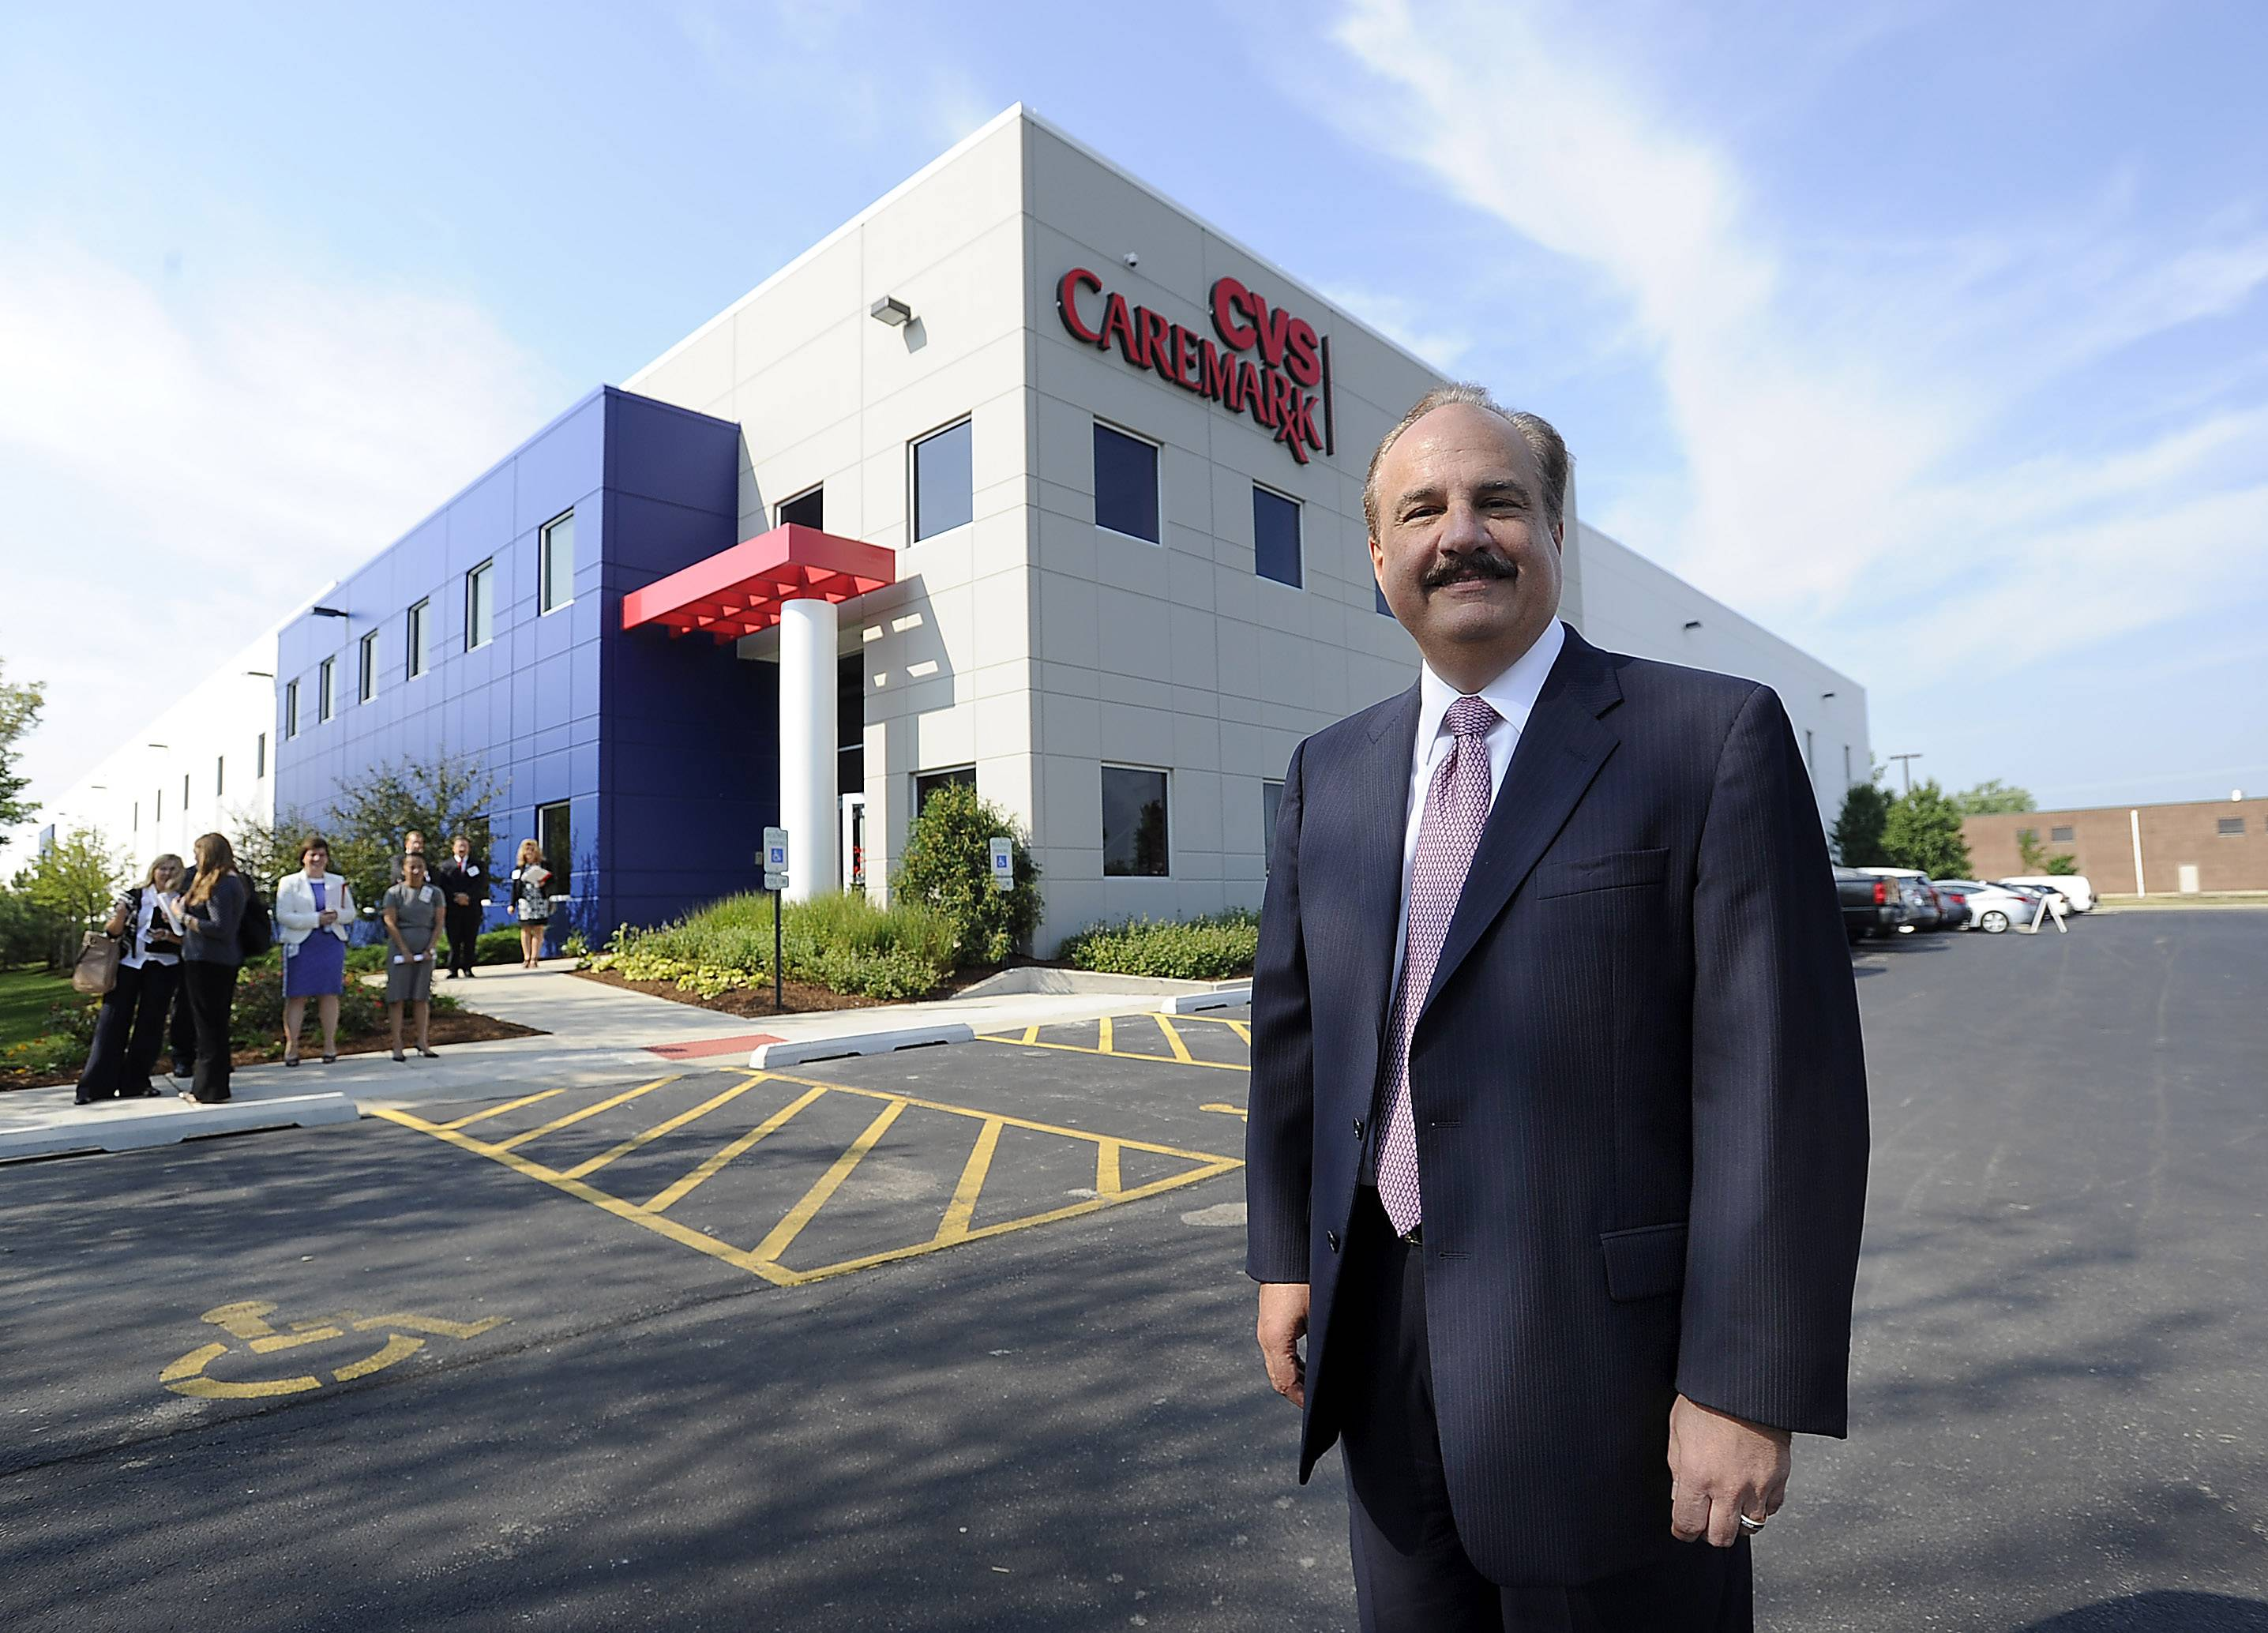 Larry Merlo, CEO of CVS Caremark, stands outside the customer Center on Wall Street in Mount Prospect.